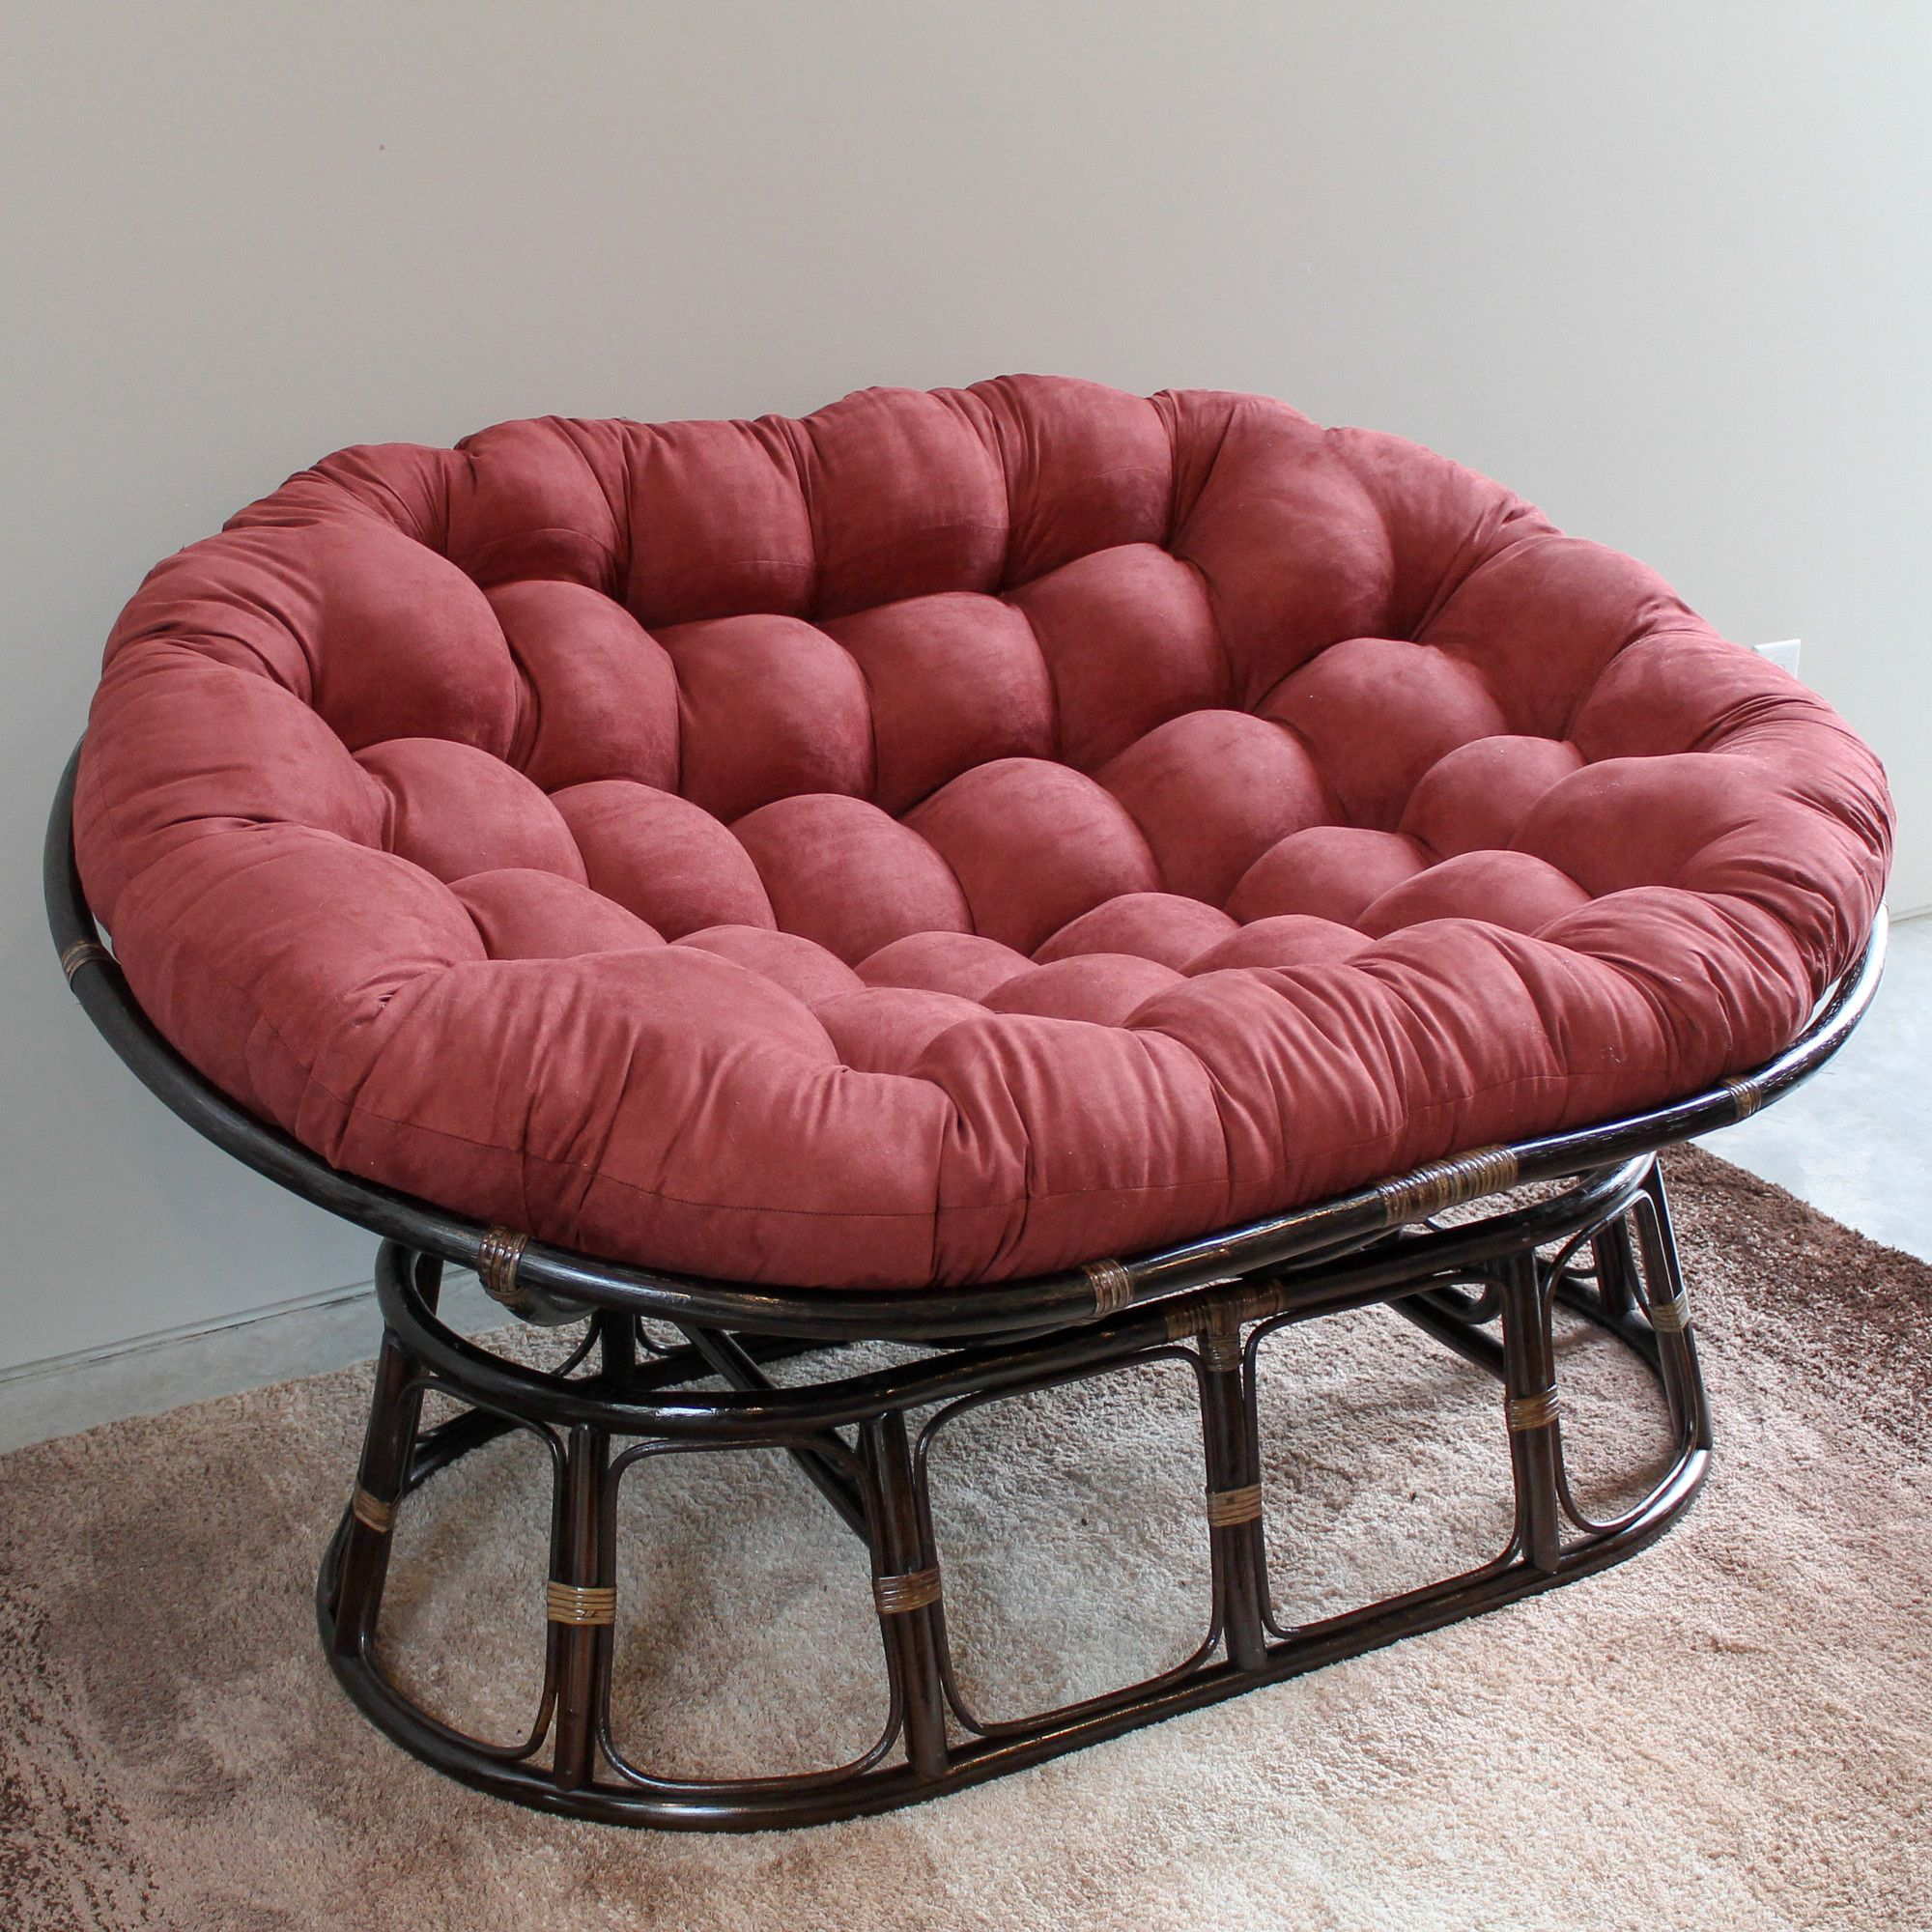 Features Rattan Double Papasan Chair With Custom Made Micro Suede Cushion Hand From 100 Pure Fits 2 Persons Comfortably